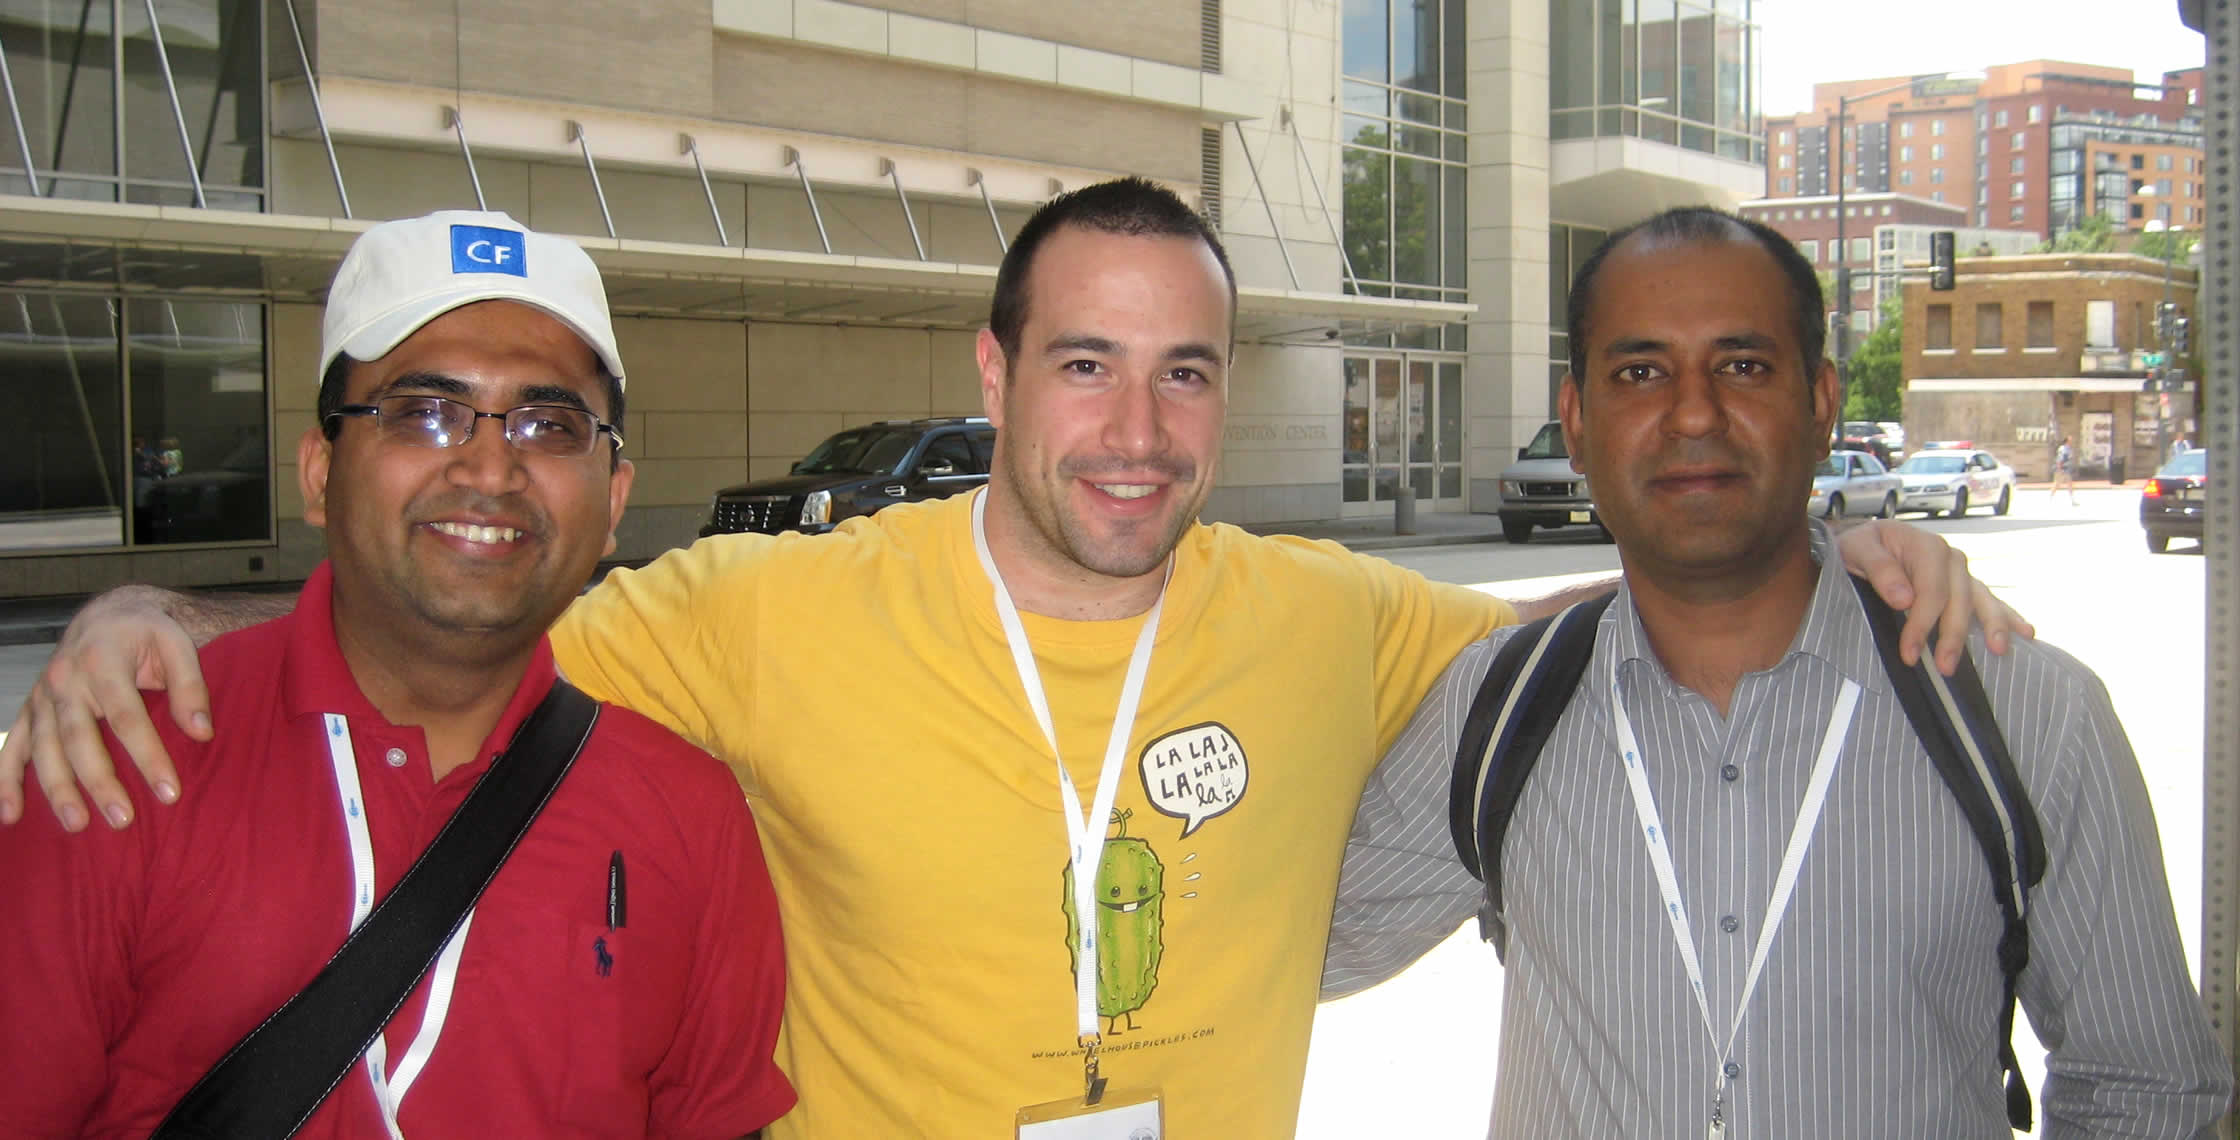 Ben Nadel at CFUNITED 2008 (Washington, D.C.) with: Qasim Rasheed and Sana Ullah